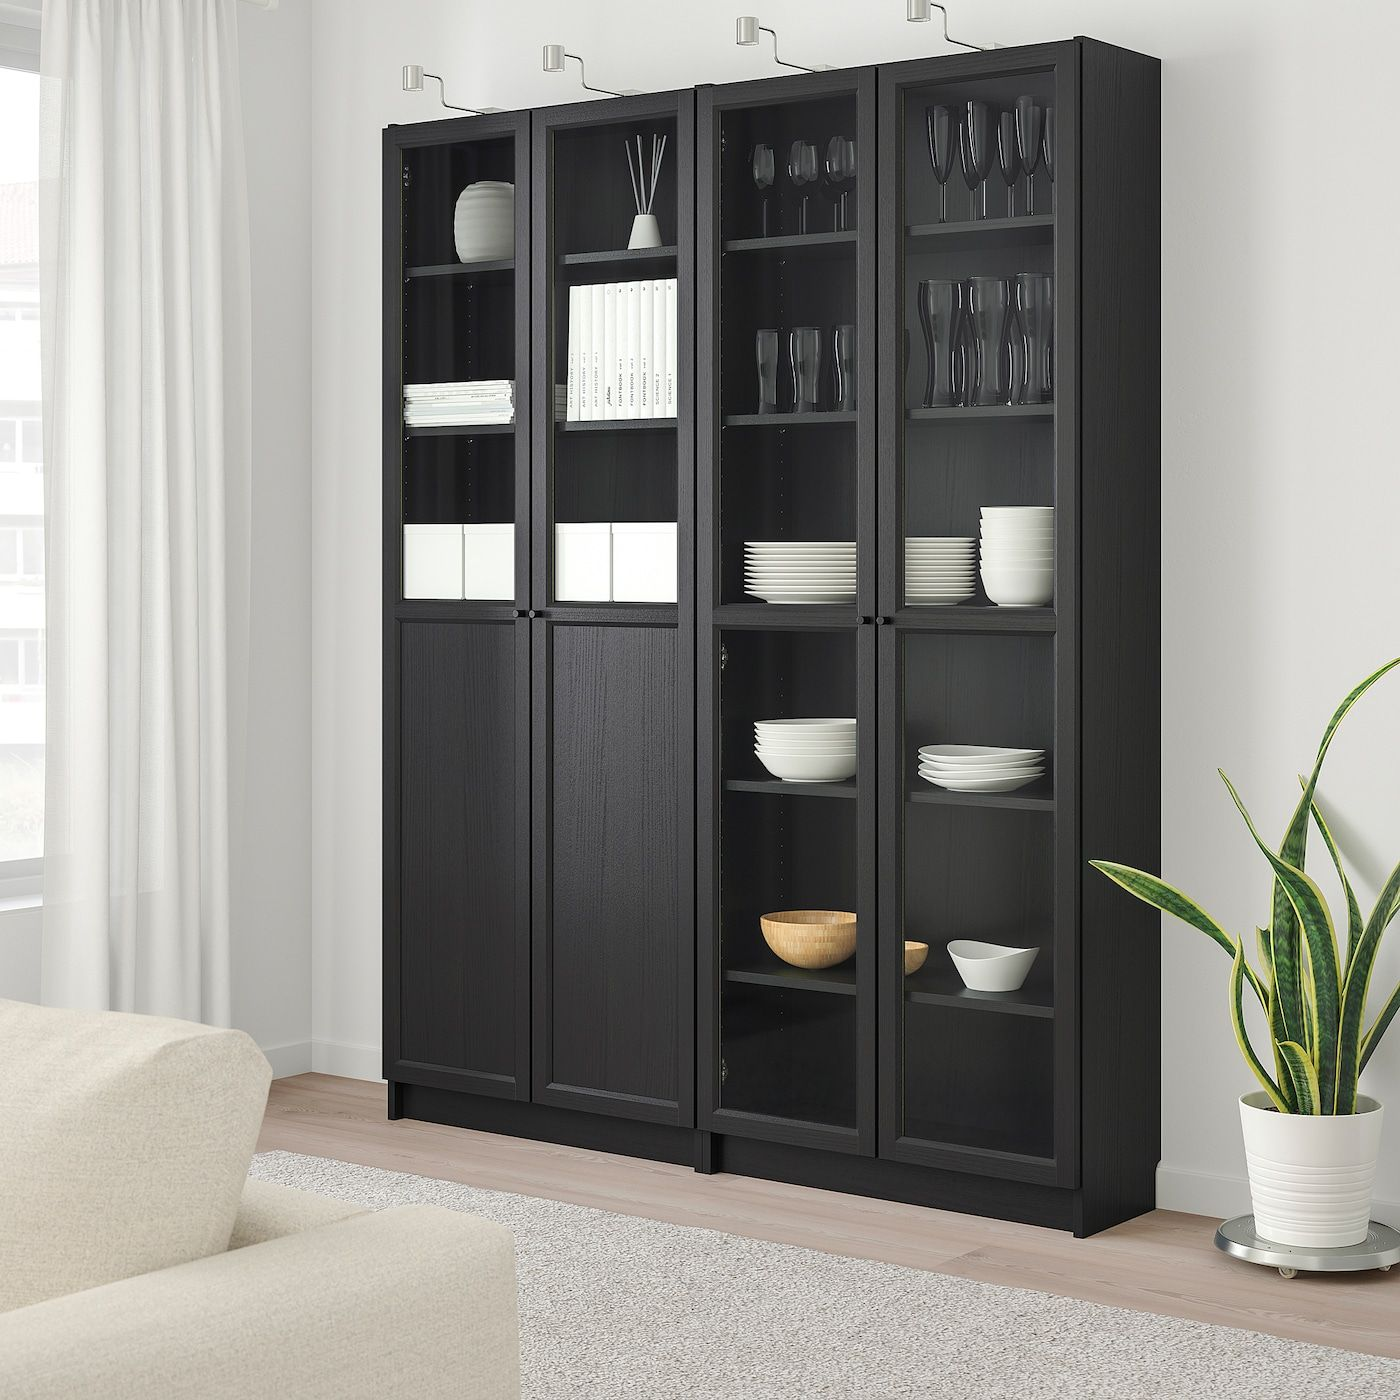 IKEA BILLY / OXBERG bookcase with panel / glass doors – black …